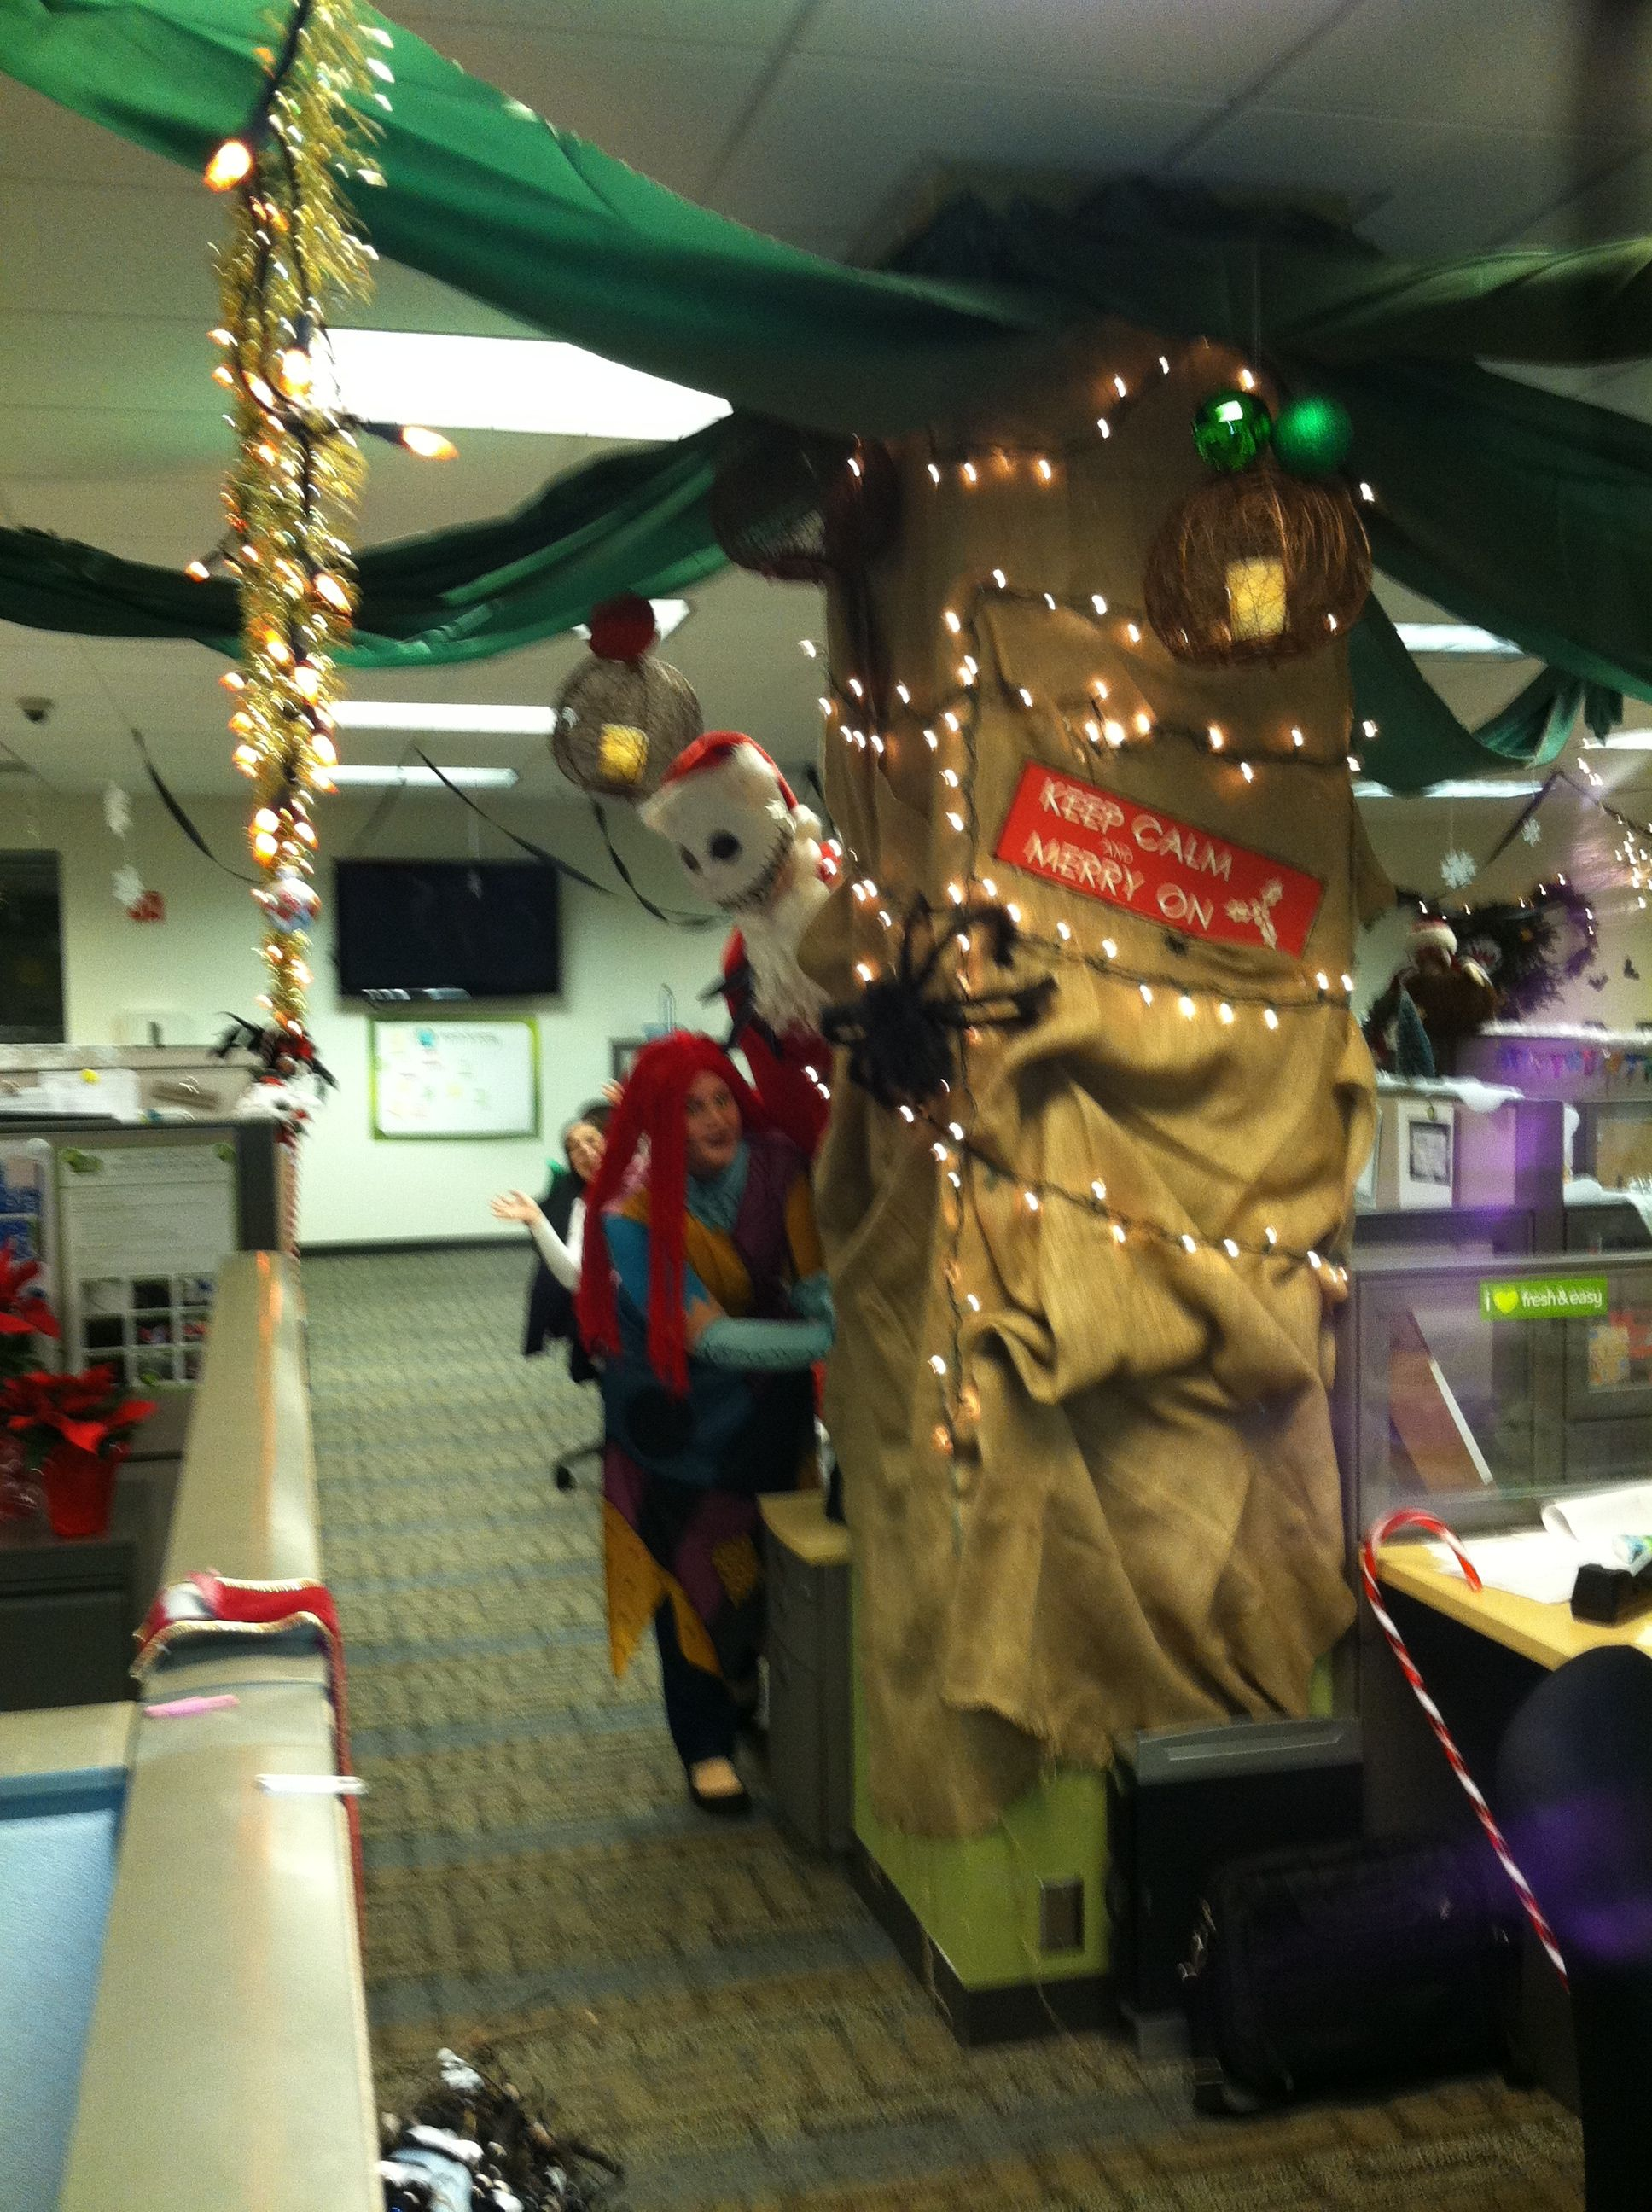 decorating our area for the nightmare before christmas theme key have costumes get your dept to dress up